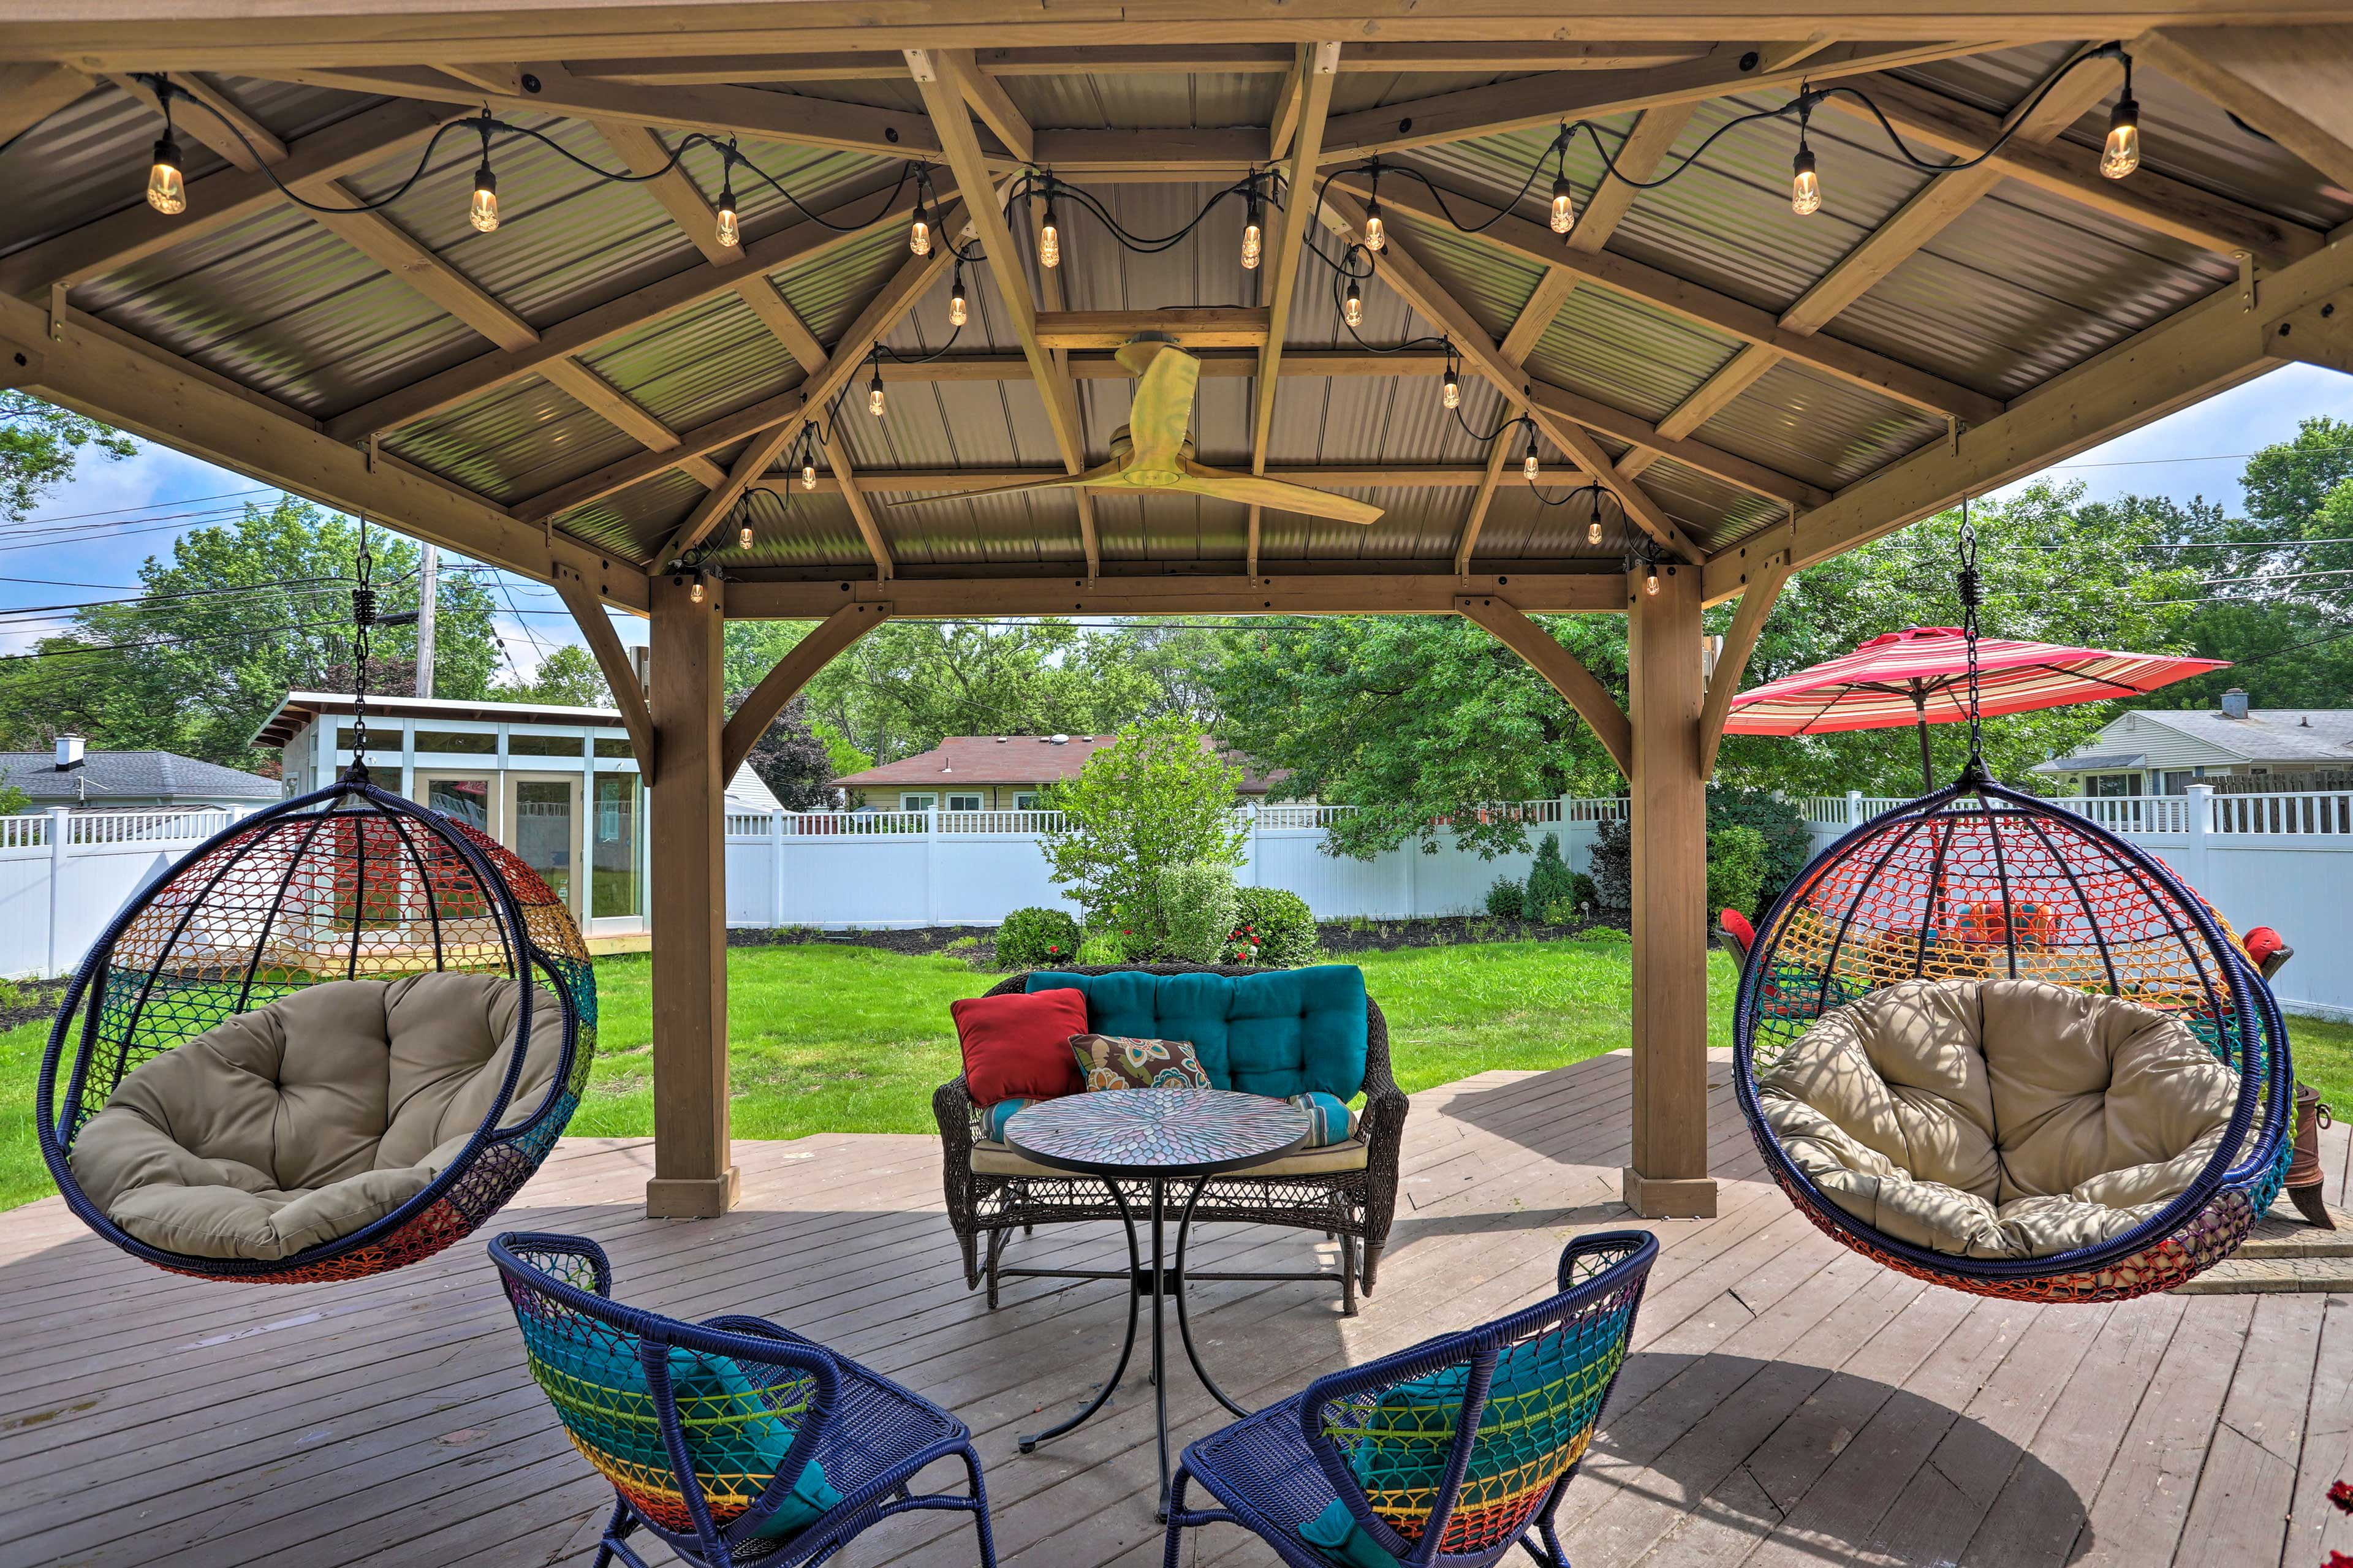 This vacation rental home features a wonderful outdoor area.